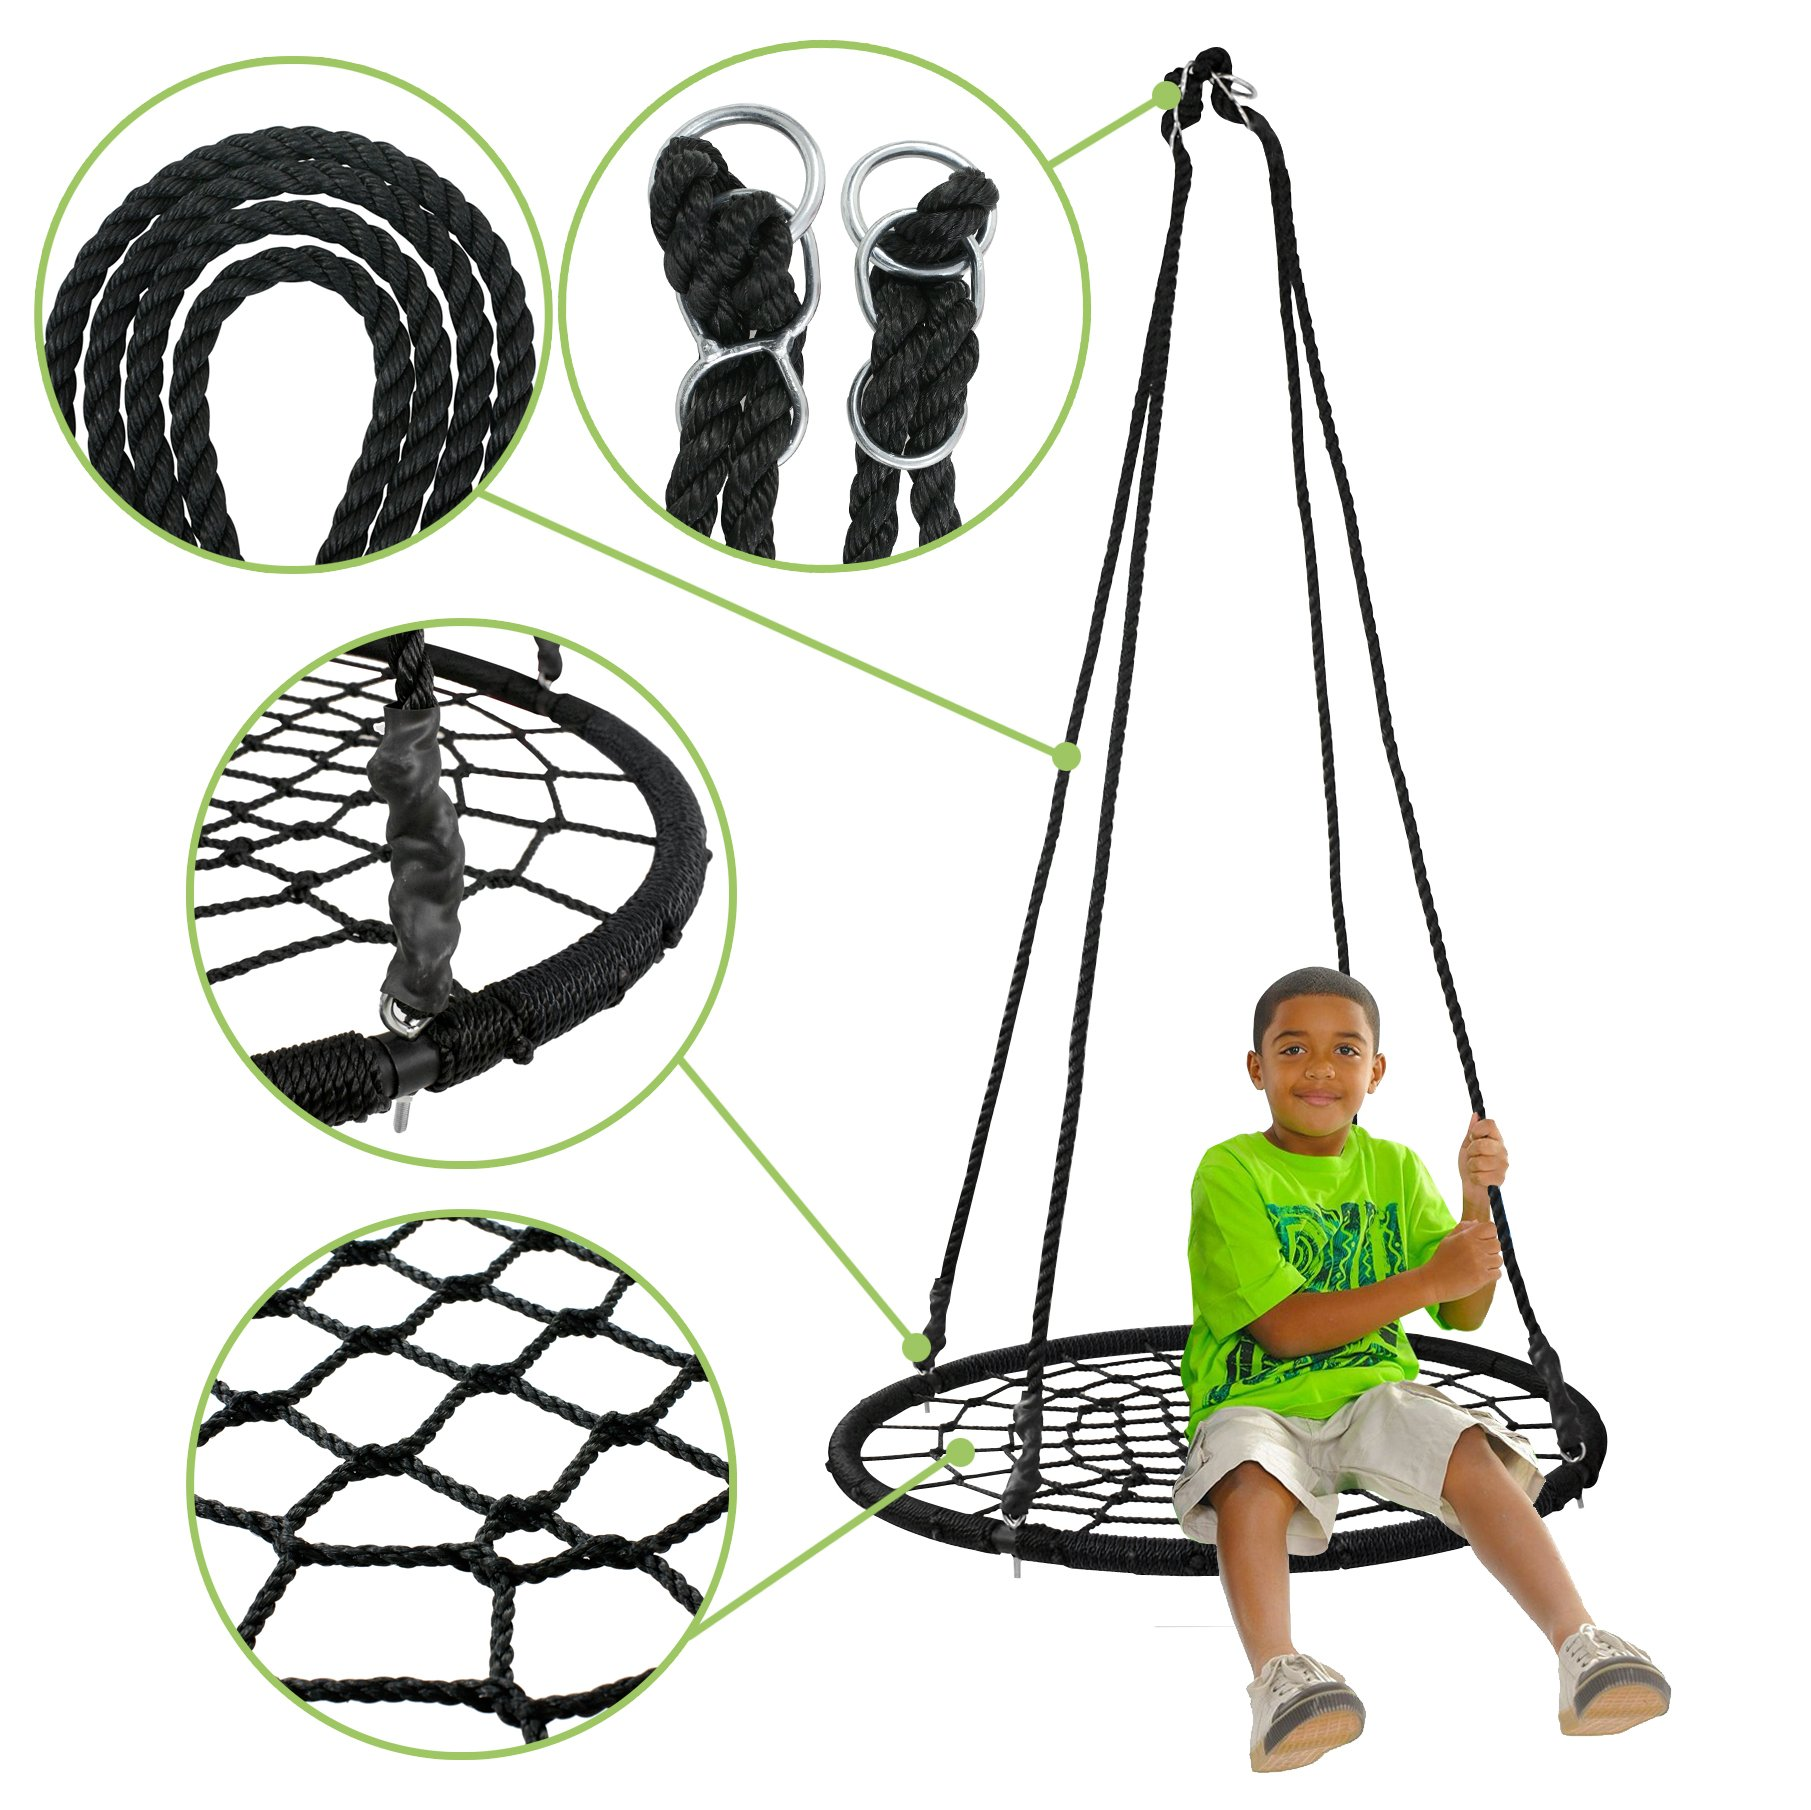 Super Deal XXL 48'' Web Tree Swing Set - Largest Platform - 360°Rotate° - 71'' Adjustable Detachable Nylon Rope - Attaches to Trees or Swing Sets - for Multiple Kids or Adult (48'') by SUPER DEA (Image #7)